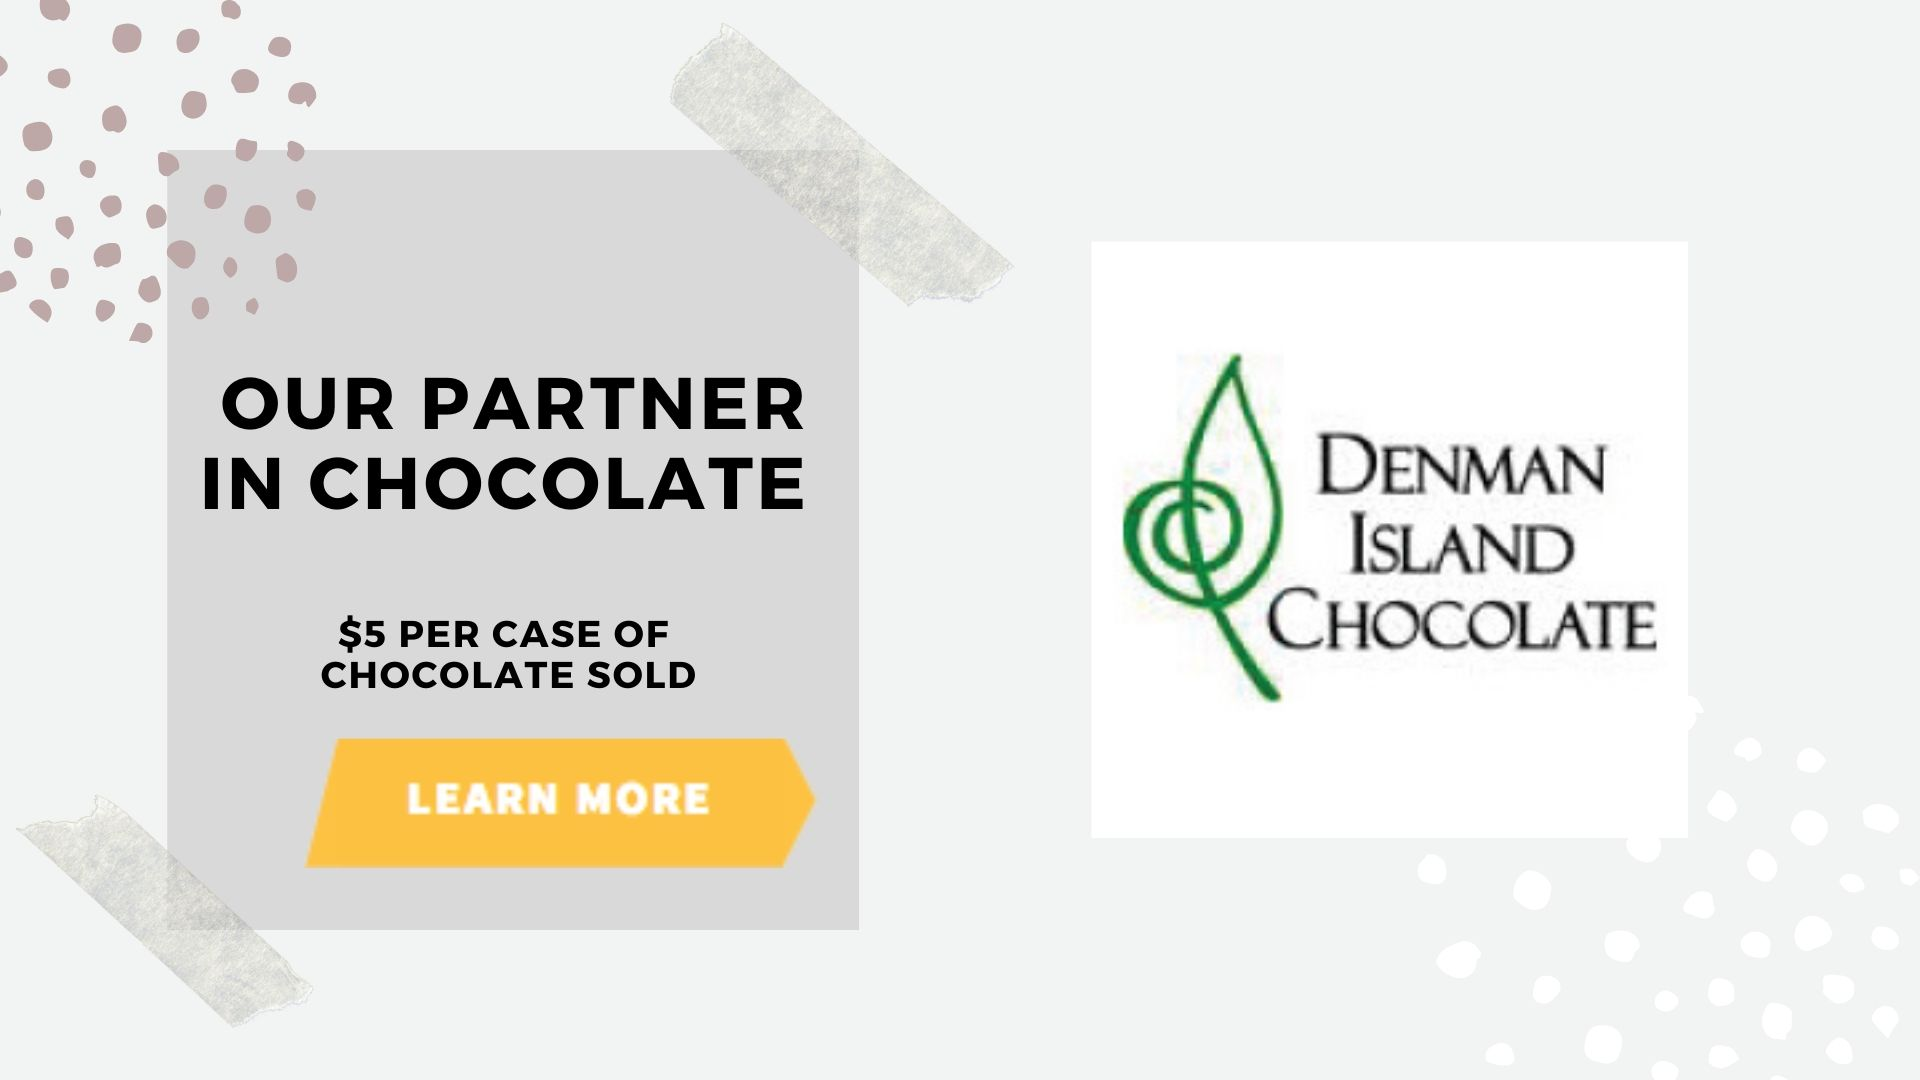 Denman Island Chocolate